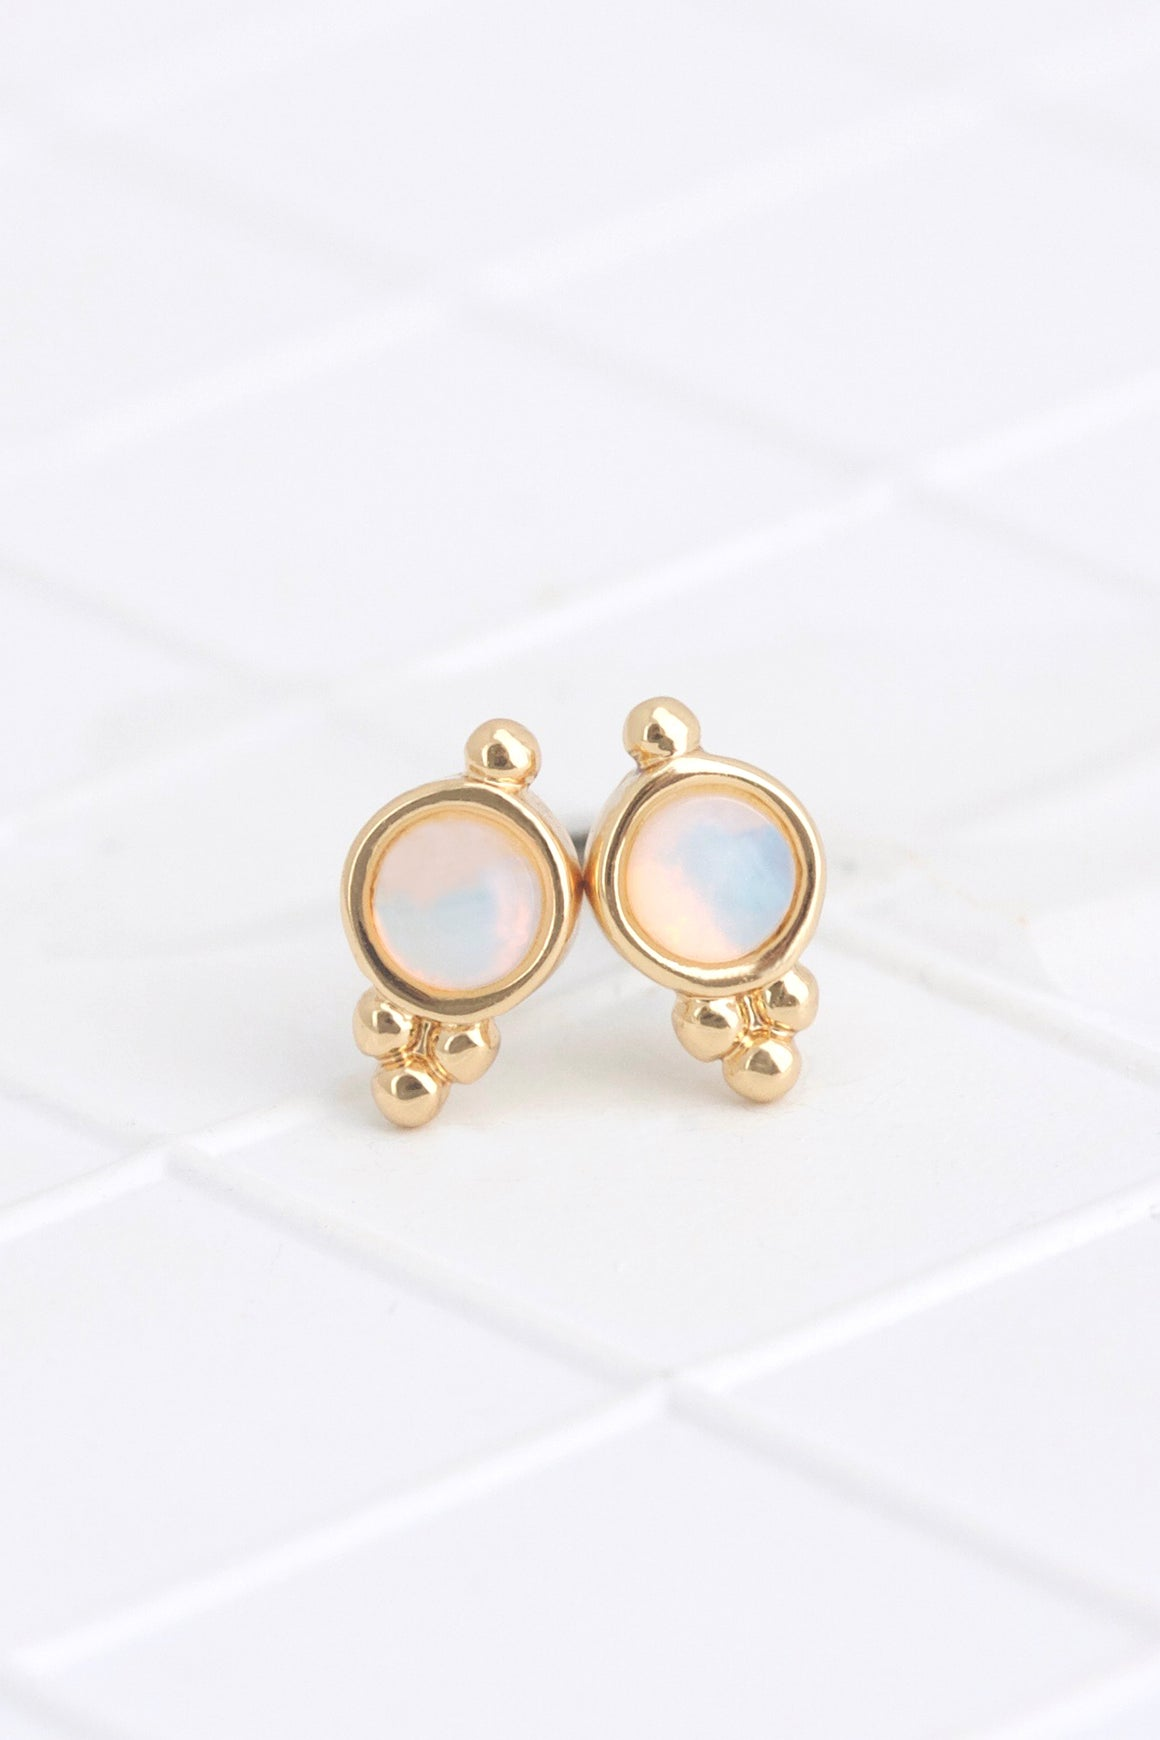 Birthstone Studs October/Opal